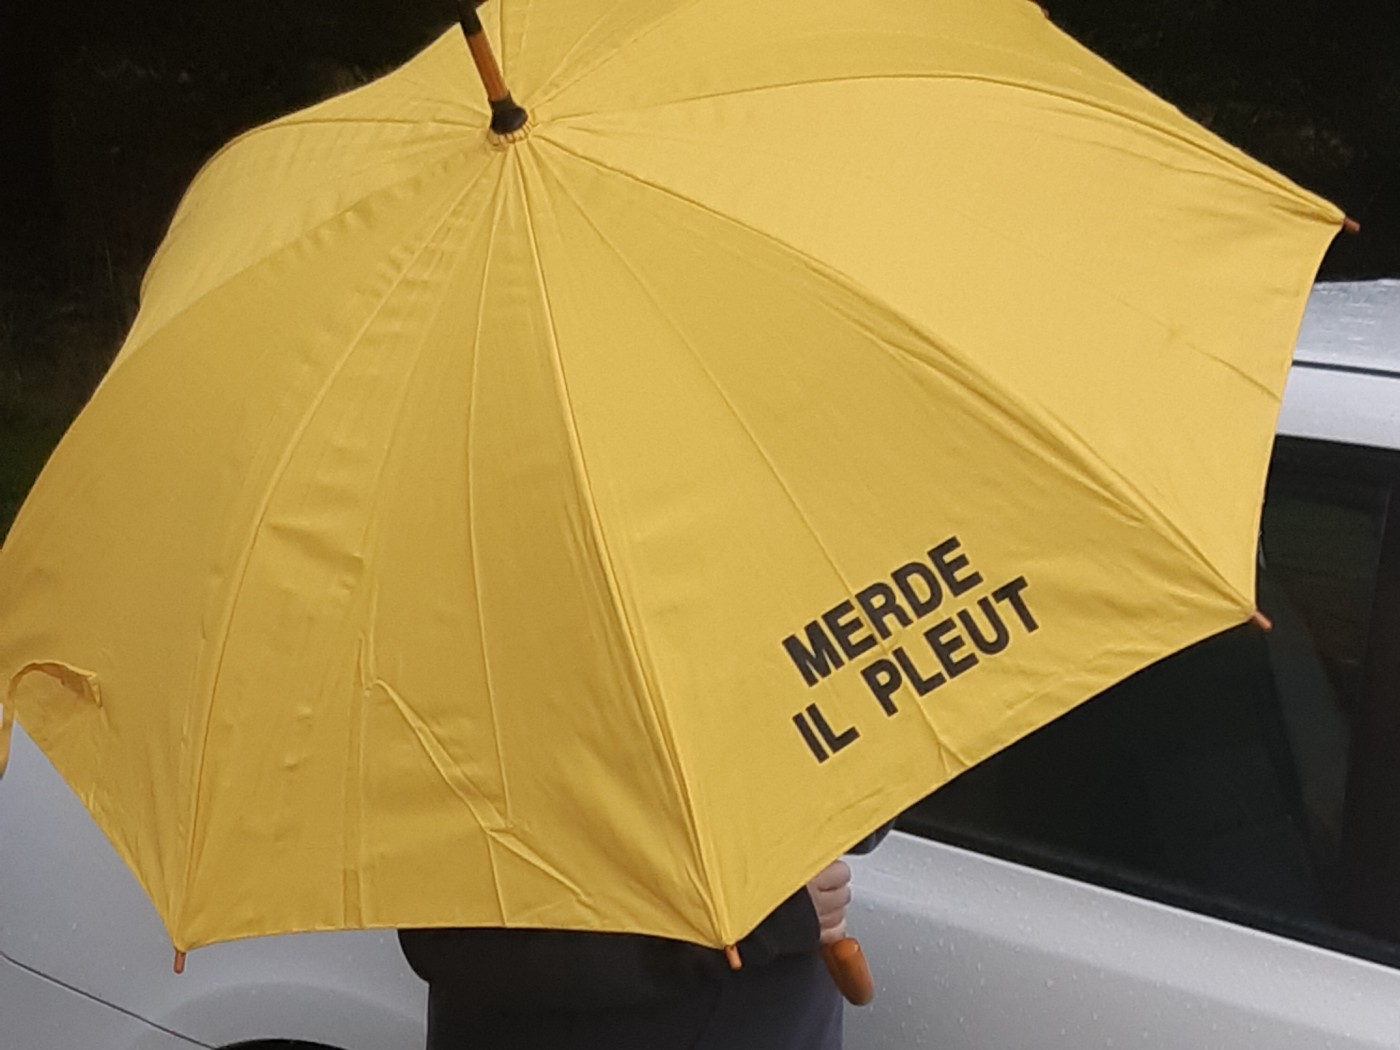 Image shows a large yellow umbrella with the words 'Merde il pleut' (shit, it's raining) on it.